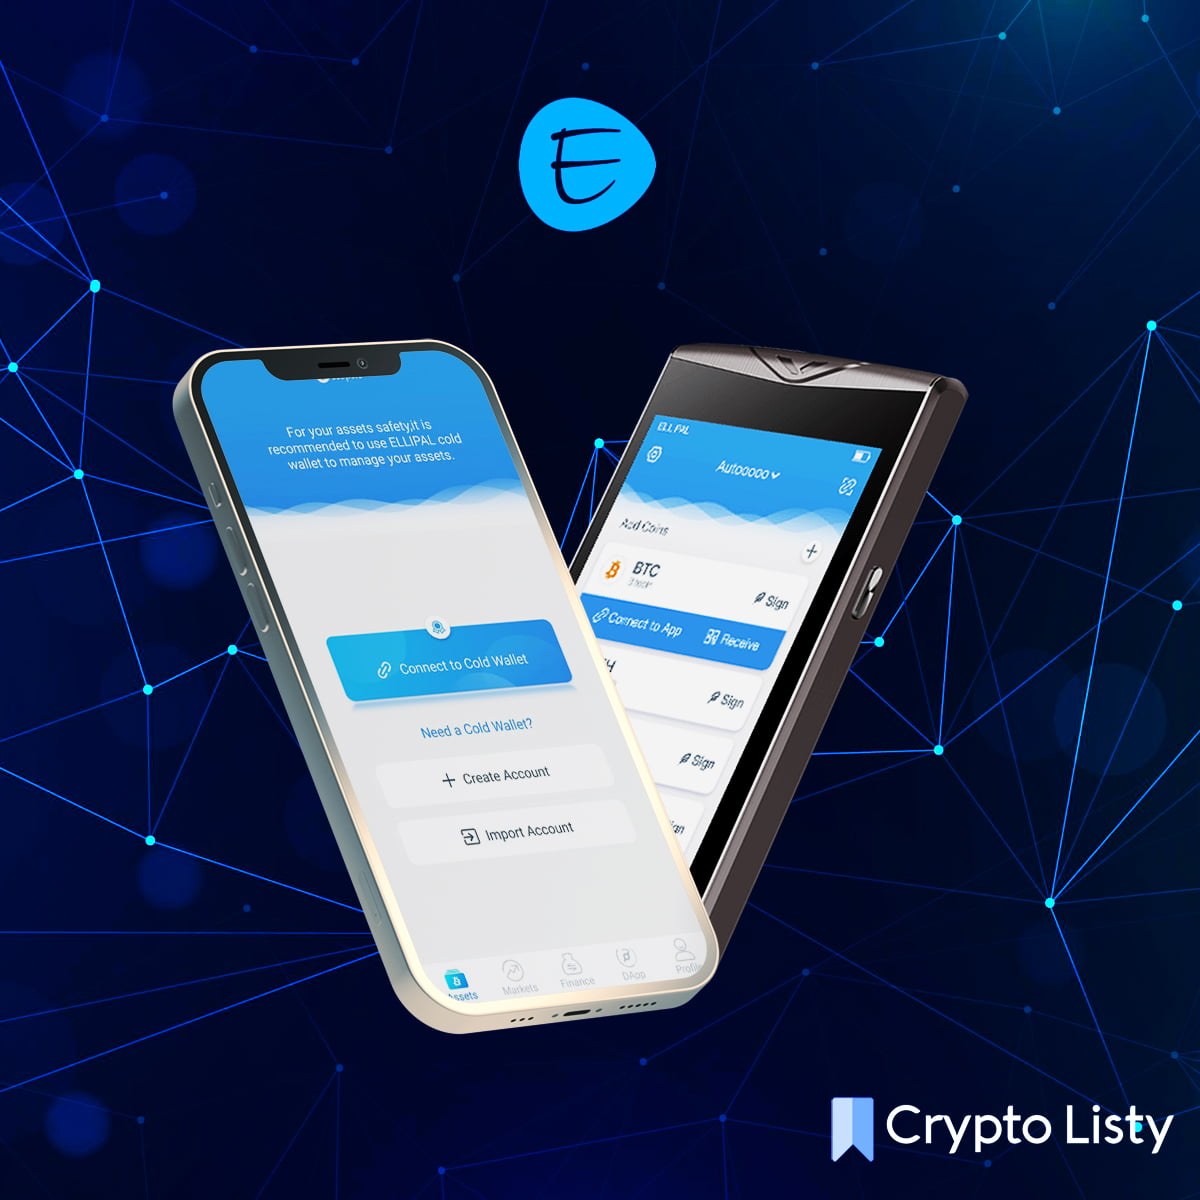 phone openning ellipal app and ellipal cold wallet next to it.